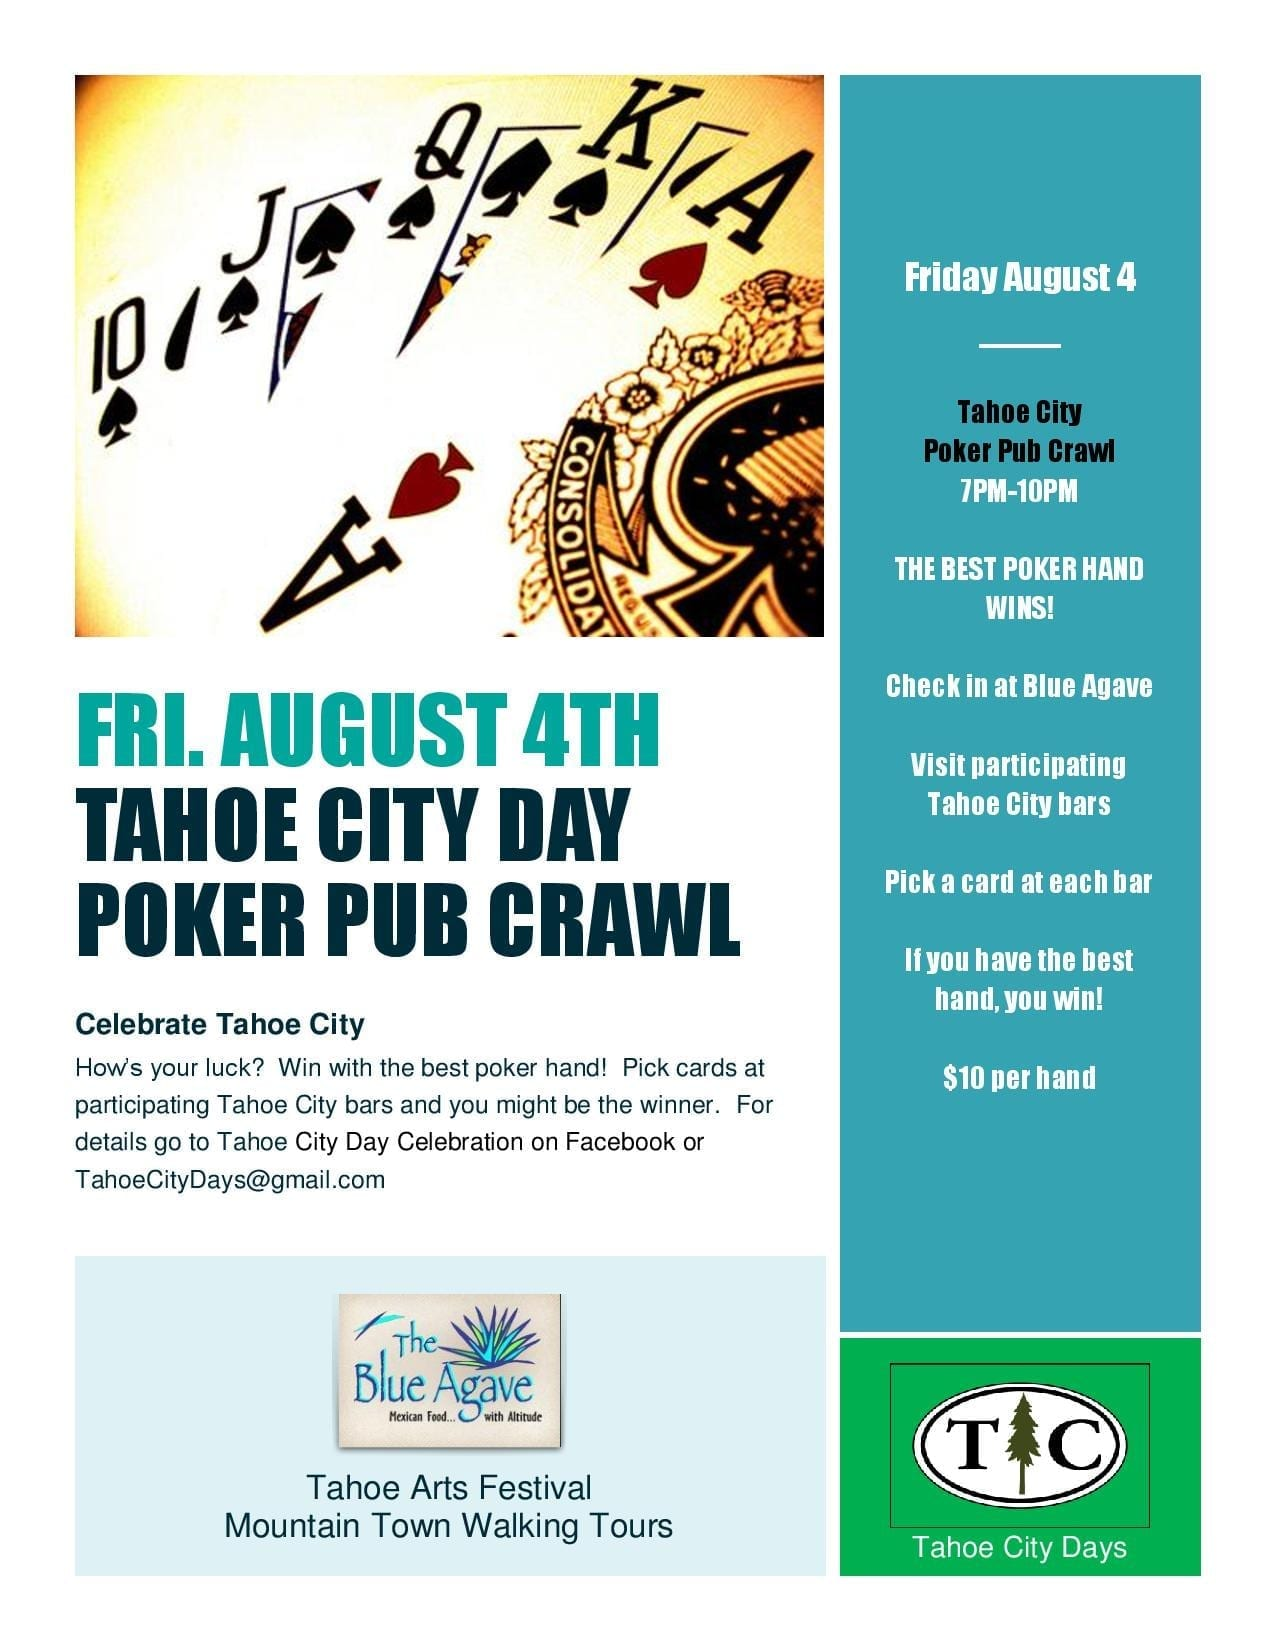 How S Your Luck Win With The Best Hand Pick Cards At Paring Tahoe City Bars And You Might Be Winner Extra Credit Trivia